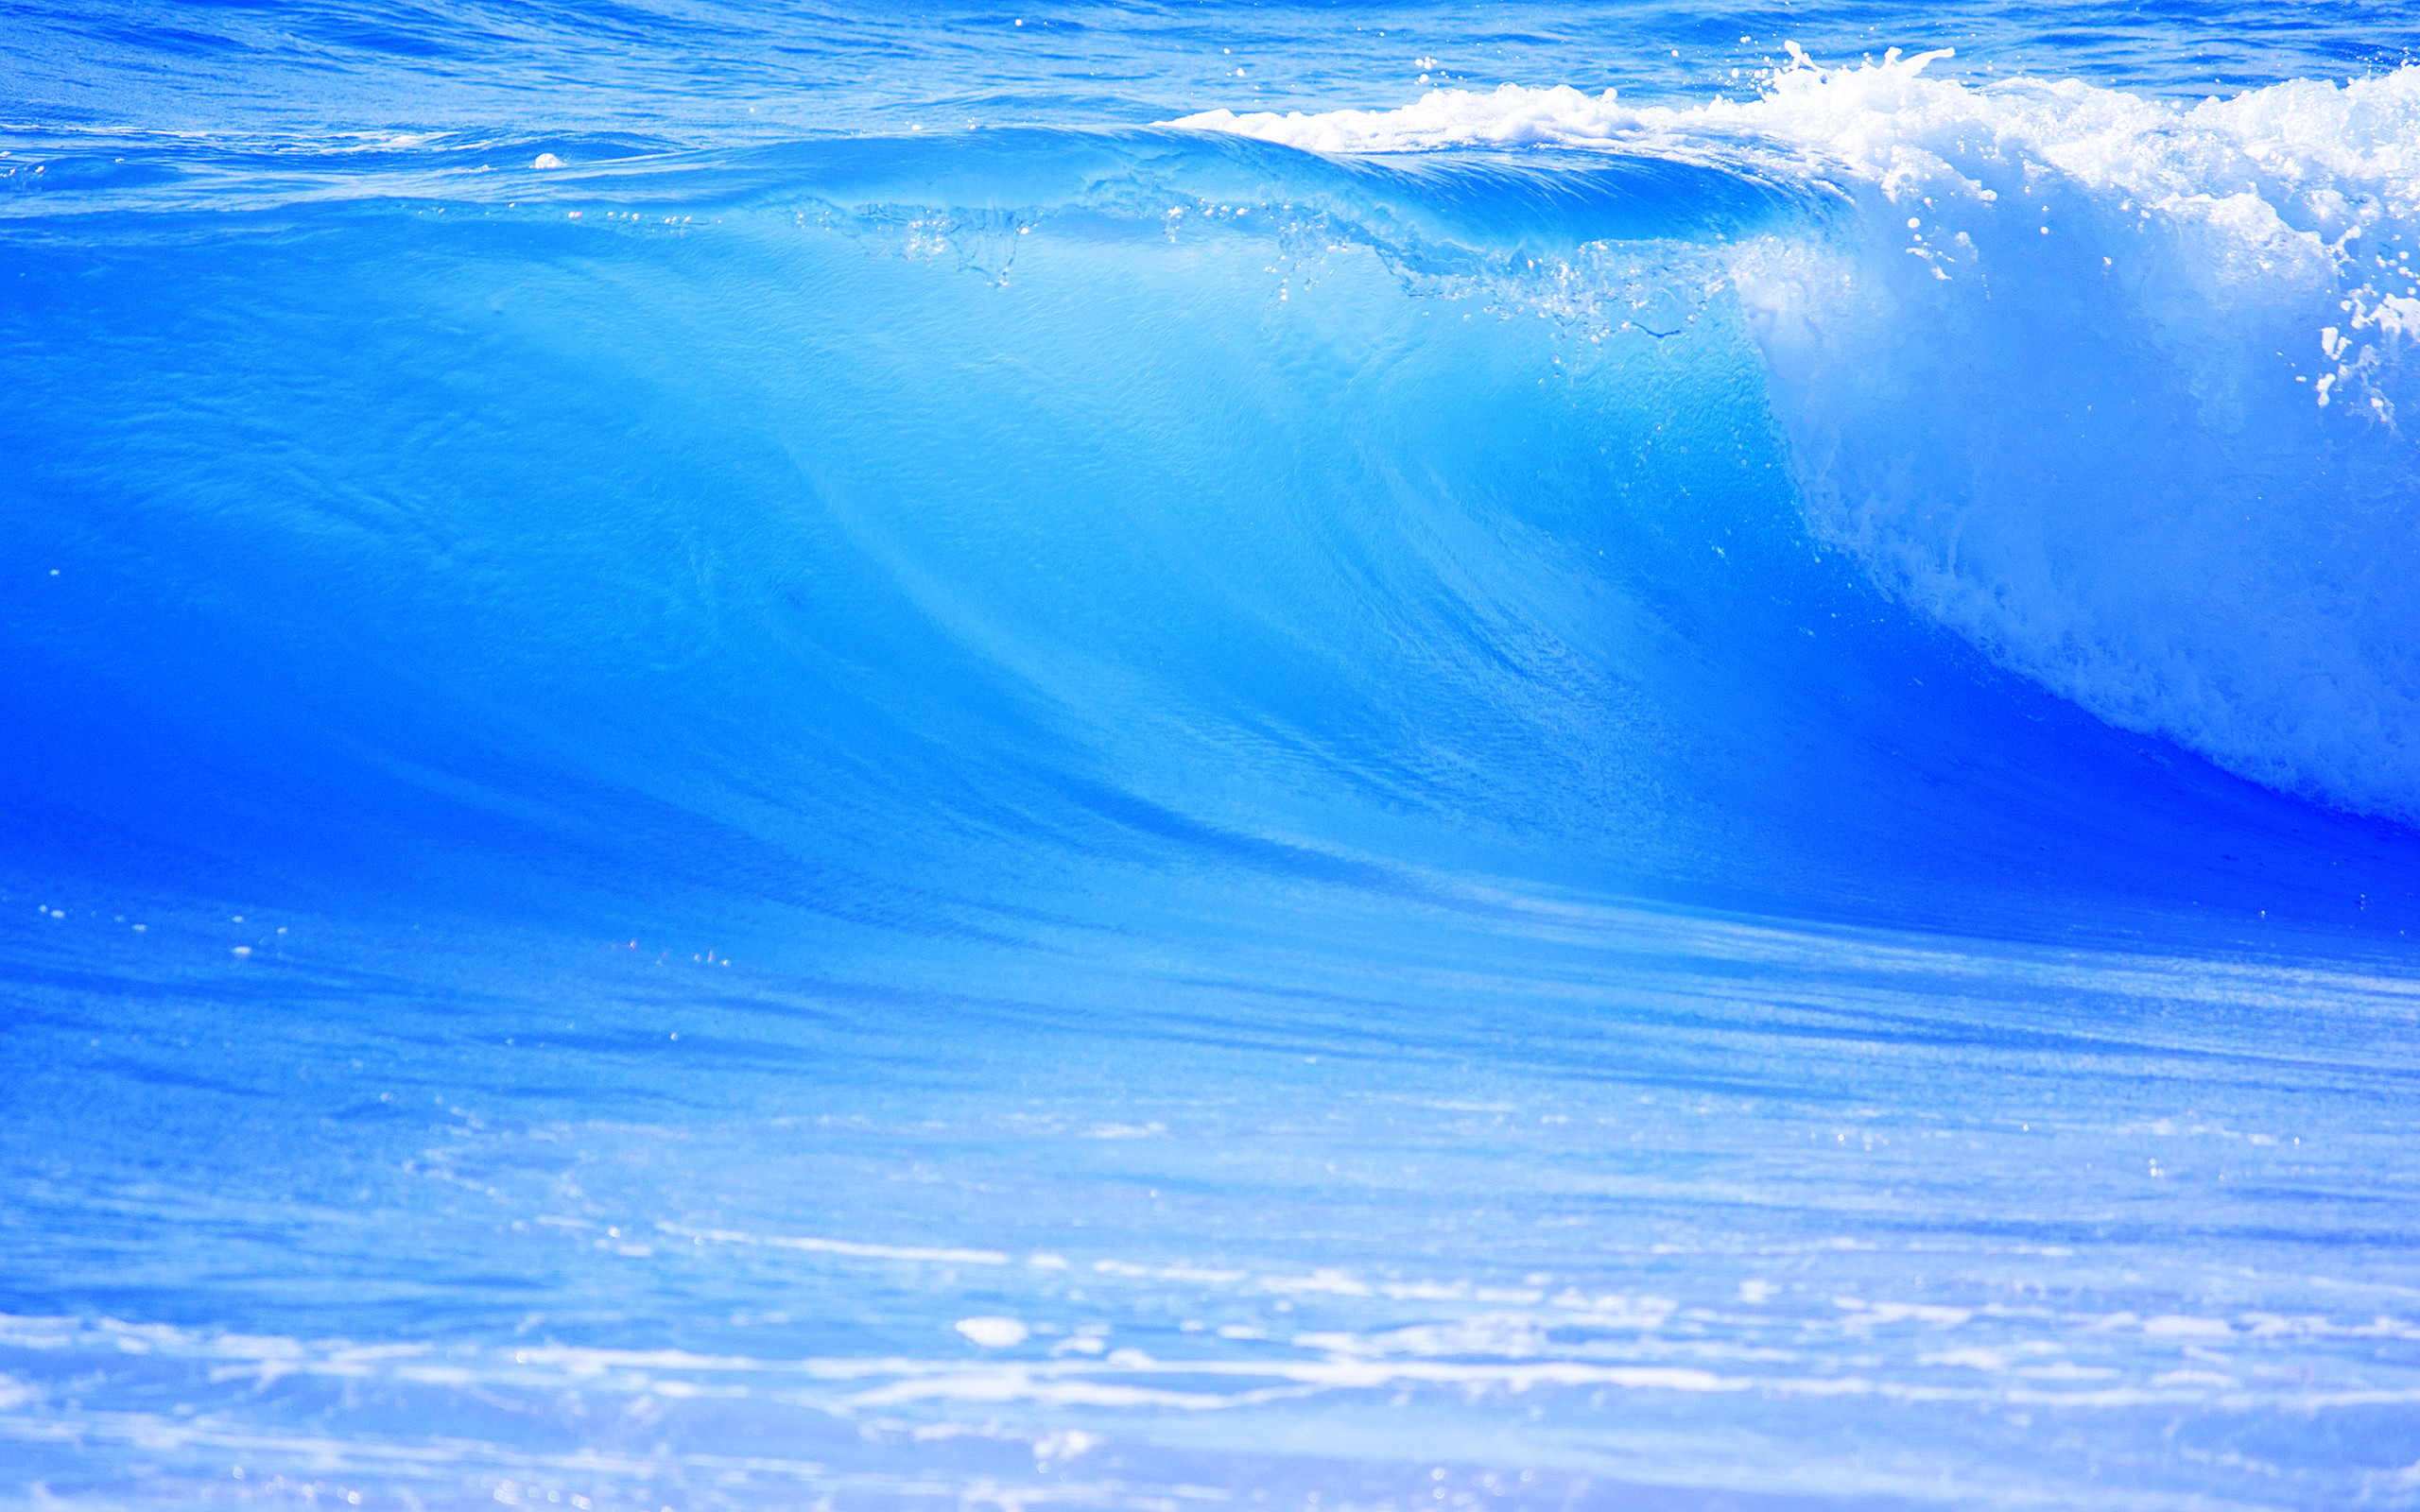 wave wallpapers ·①